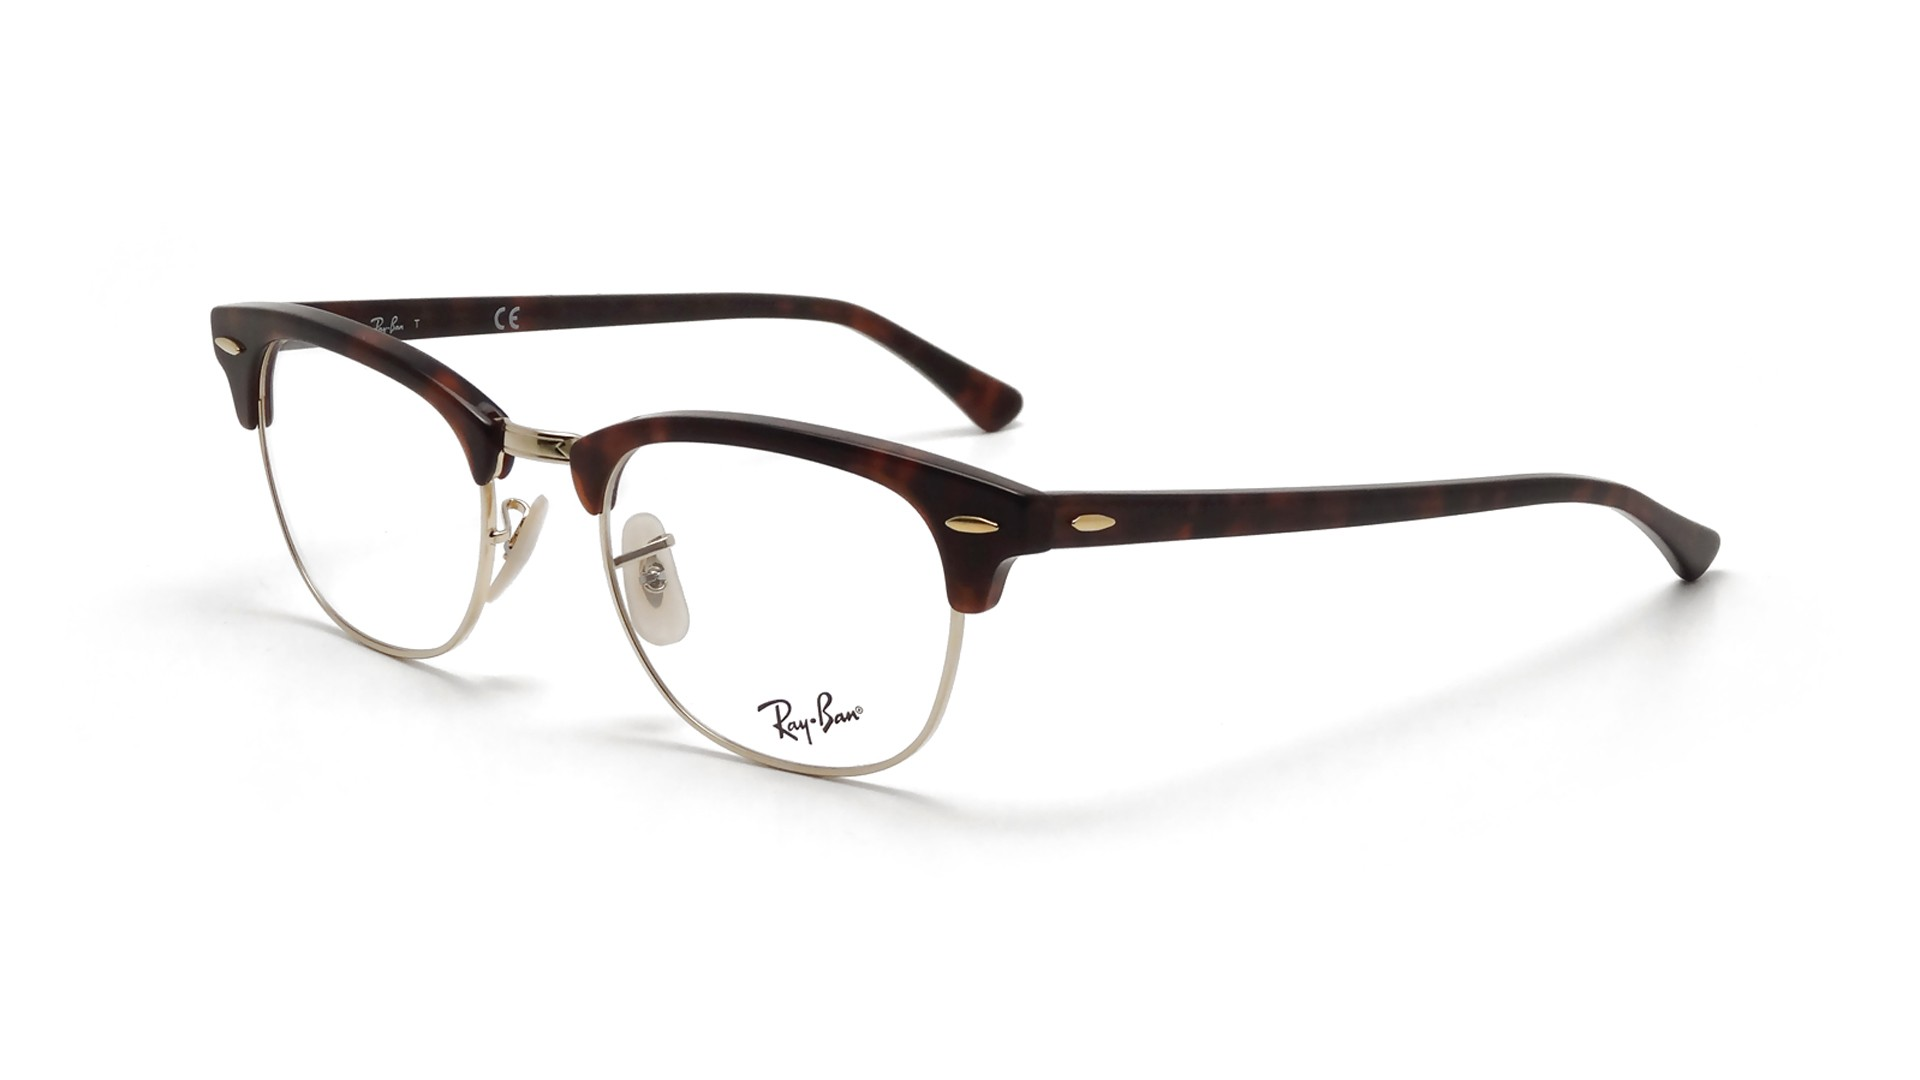 Ray Ban Clubmaster De Vue Homme